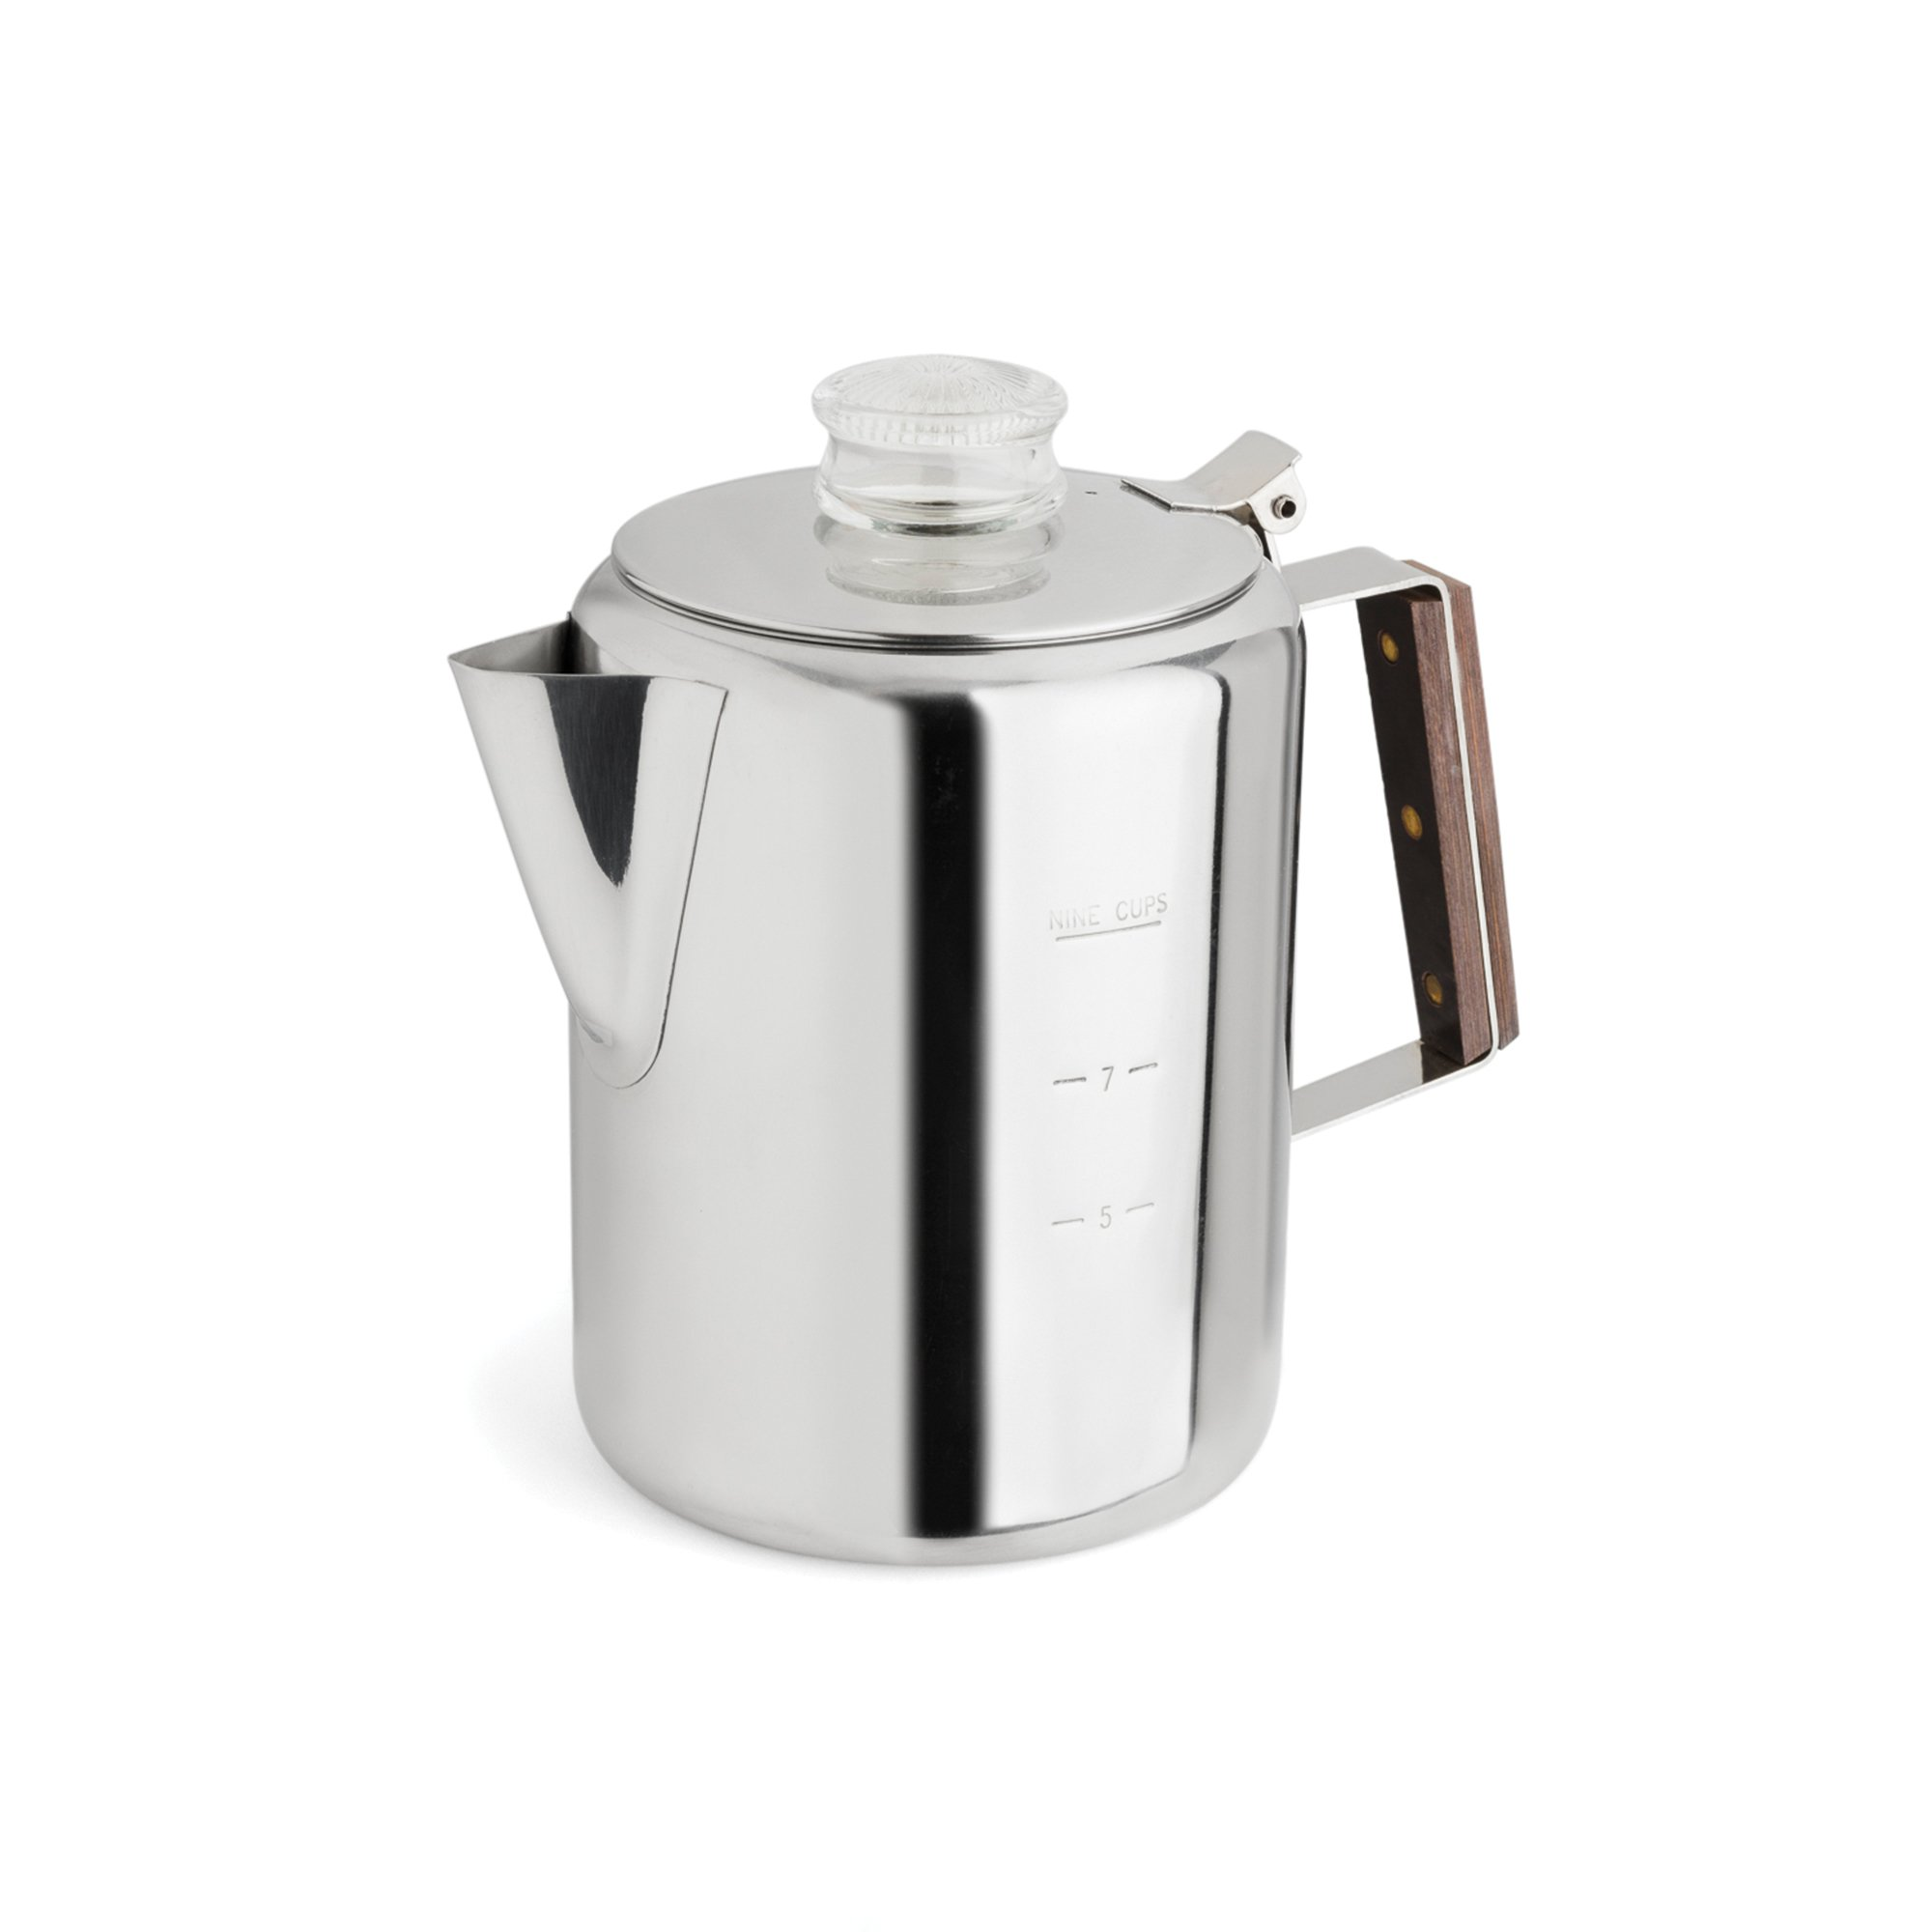 TOPS 55704 Rapid Brew Stainless Steel Stovetop Coffee Percolator, 9-Cup, Metallic by Tops